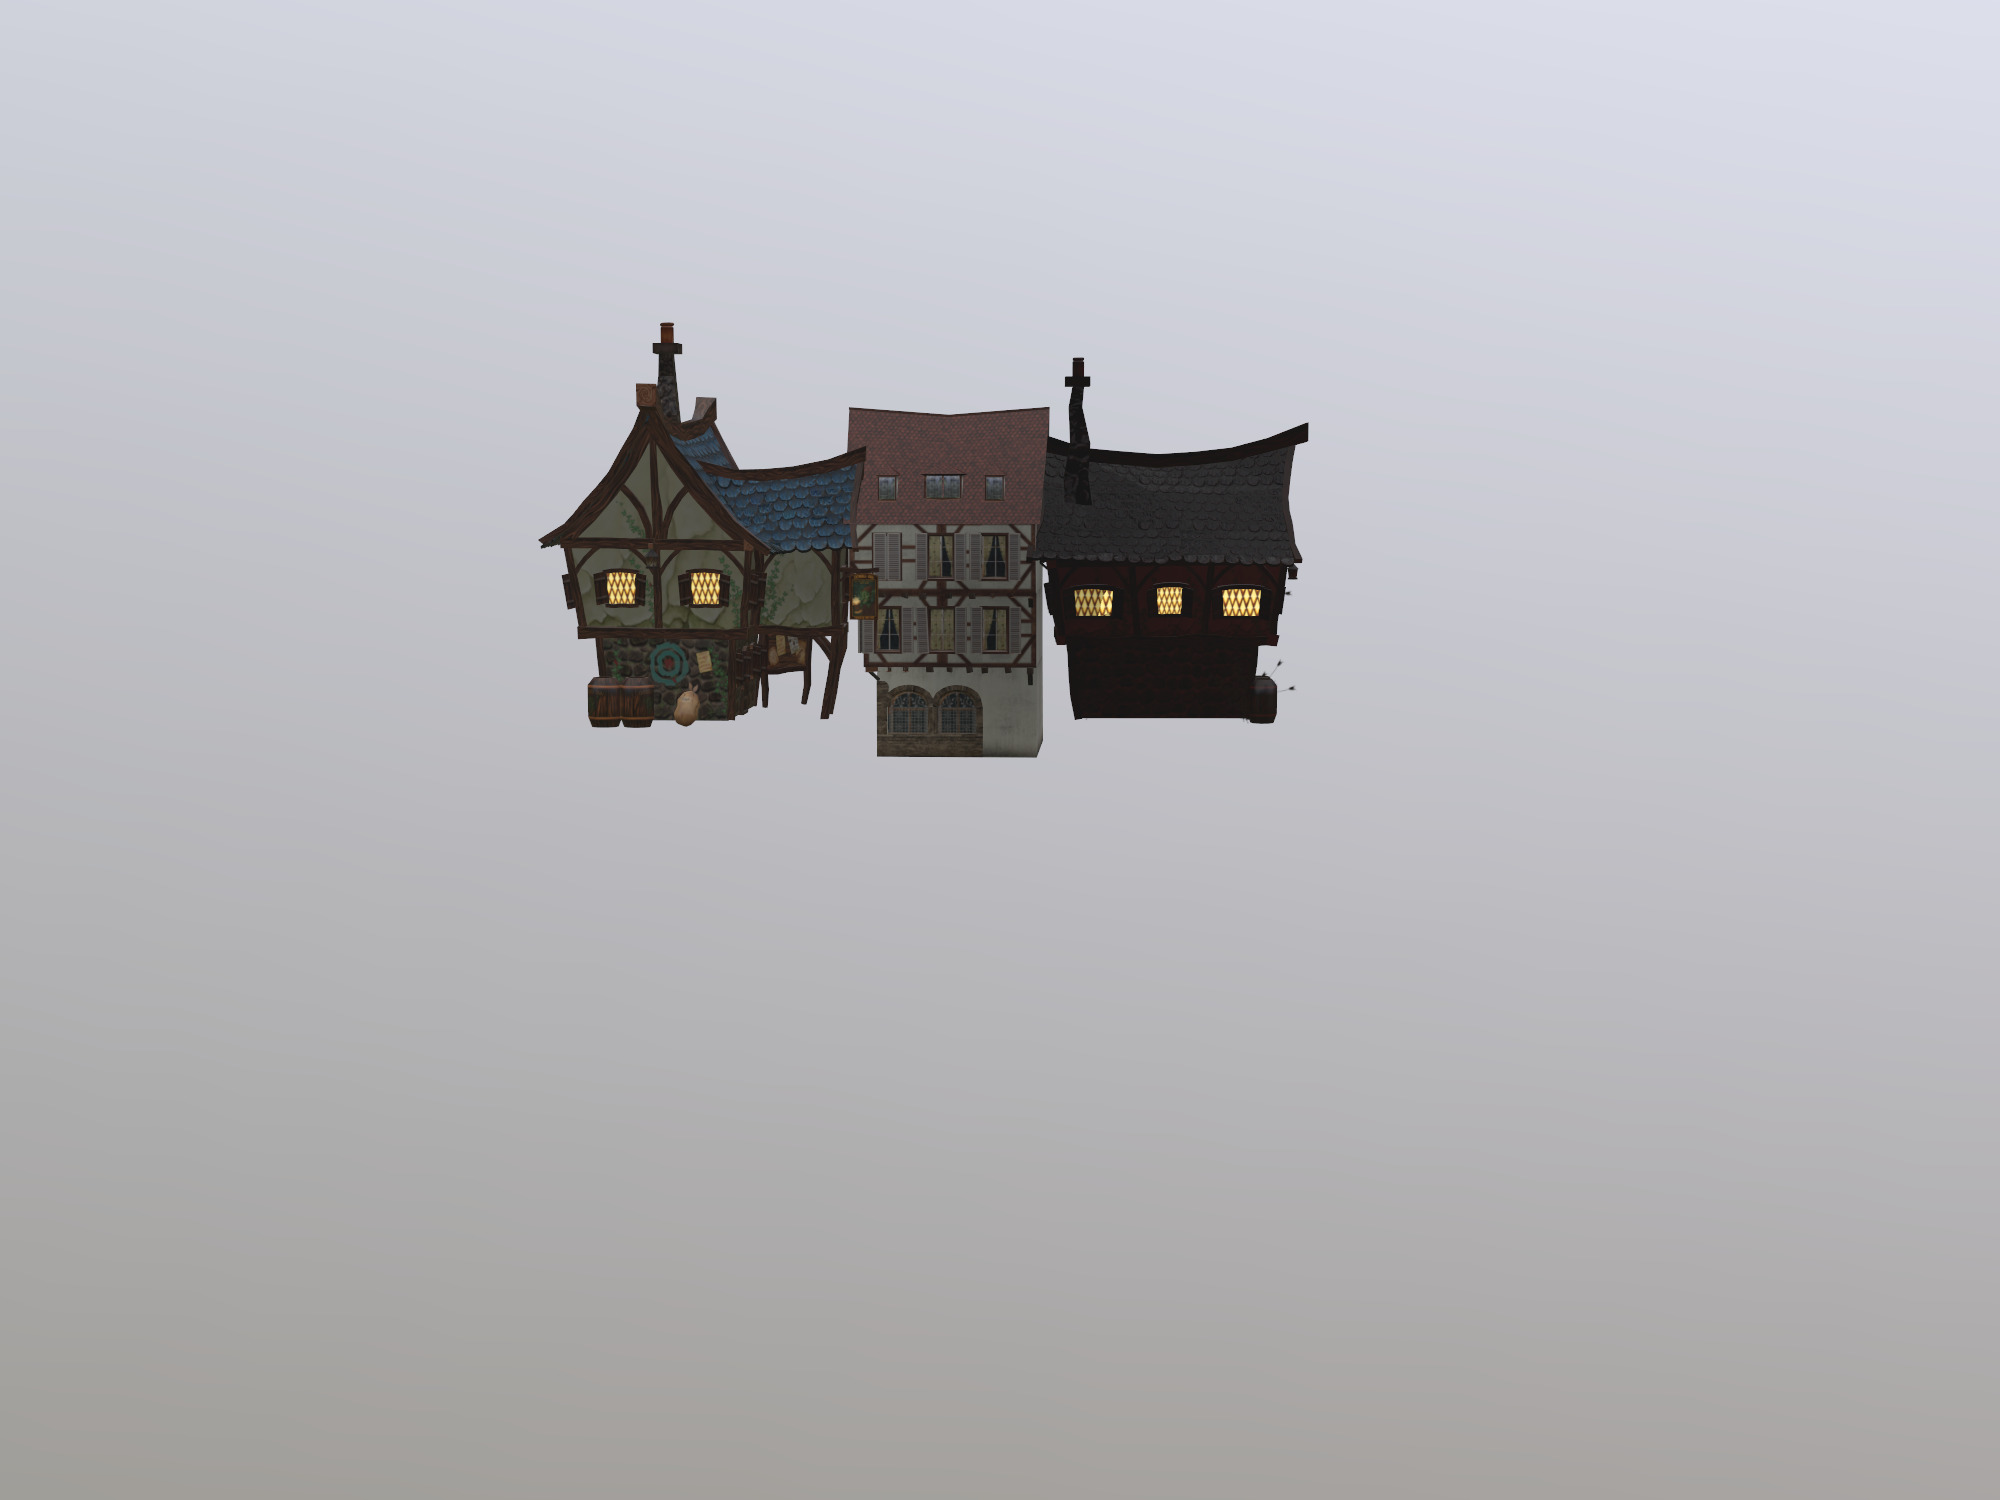 The Inn (copy) - 3D design by monikamoon14 on Dec 16, 2018